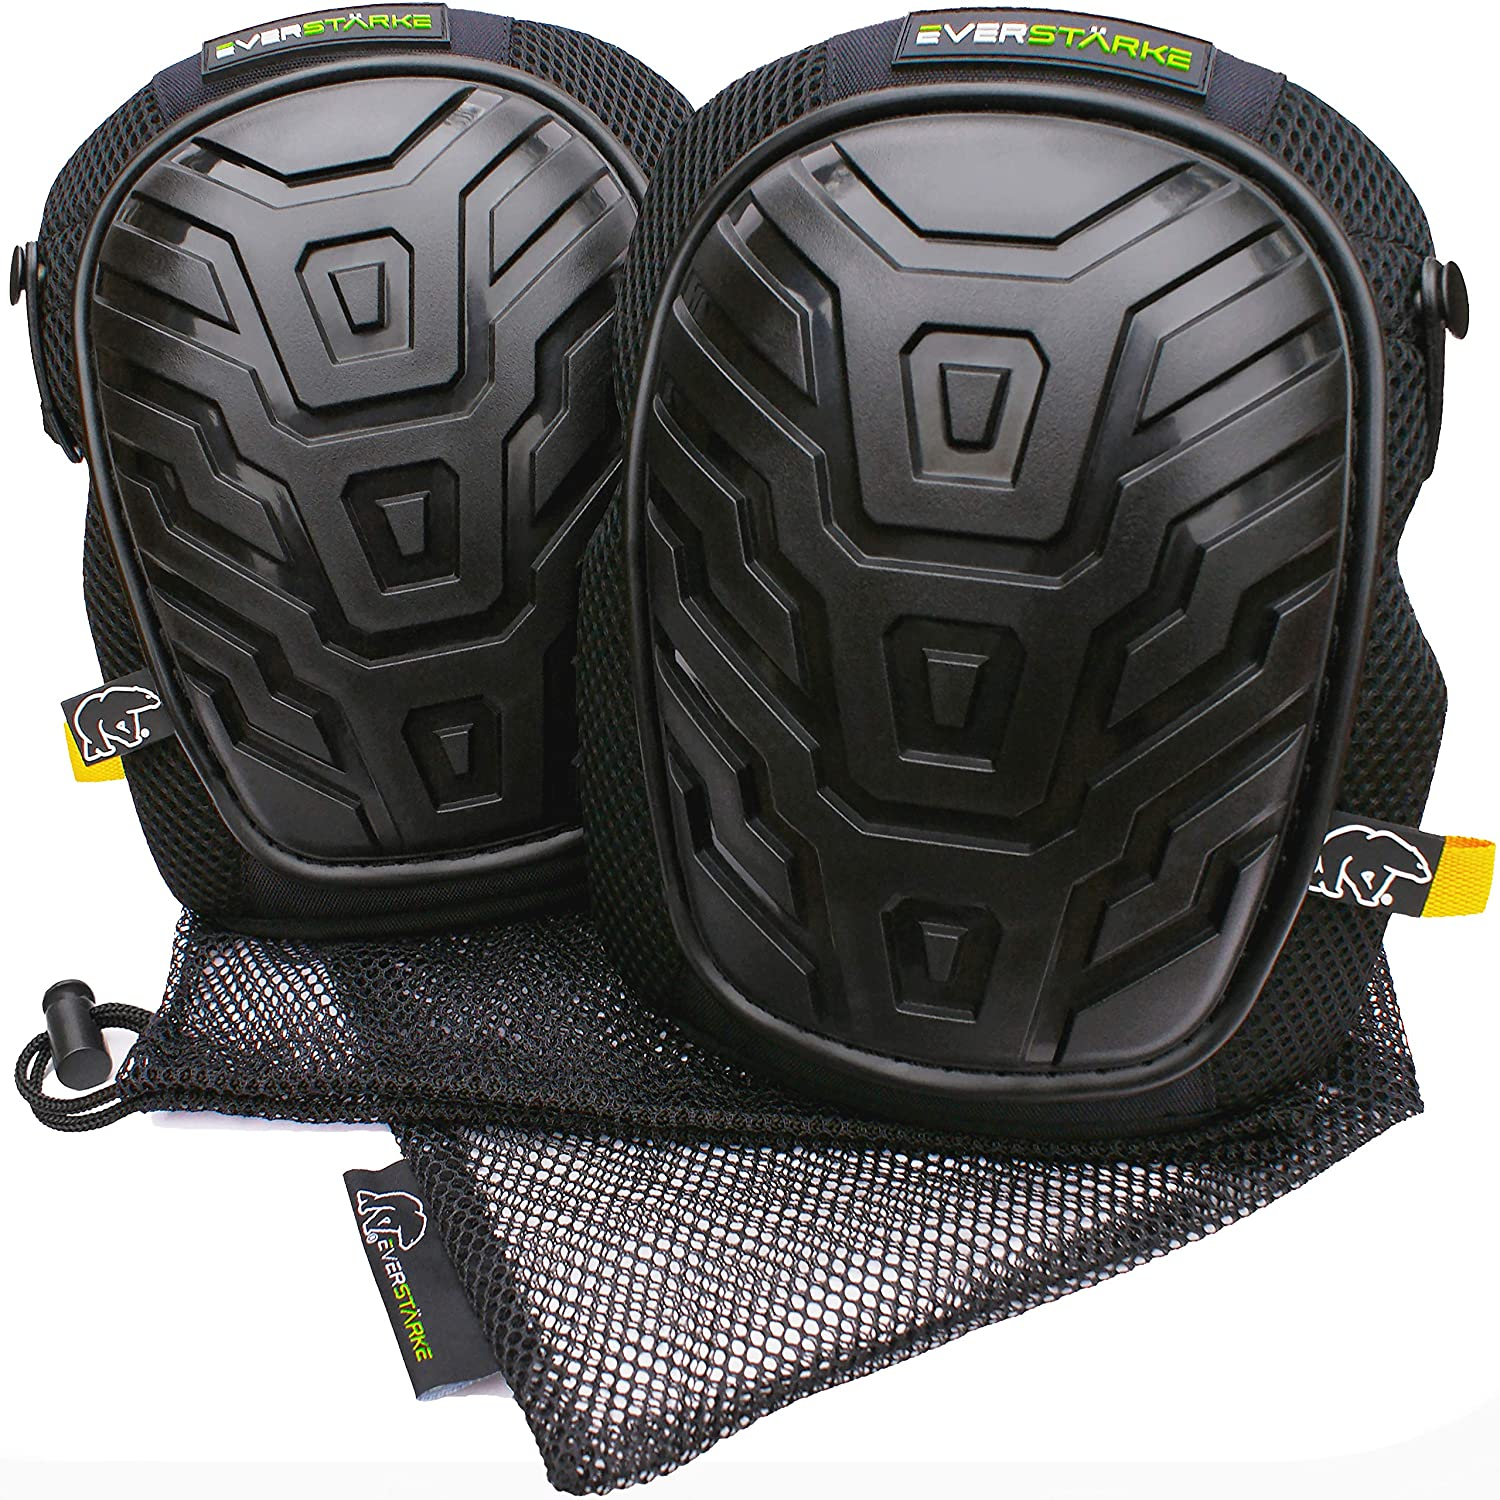 Everstä rke Premium Professional Knee Pads - Comfortable Heavy Duty Foam and Soft Gel Core - Non-Slip Adjustable Neoprene Straps - Protection for Construction Work, DIY, Gardening, Flooring, Tiling Everstärke UK